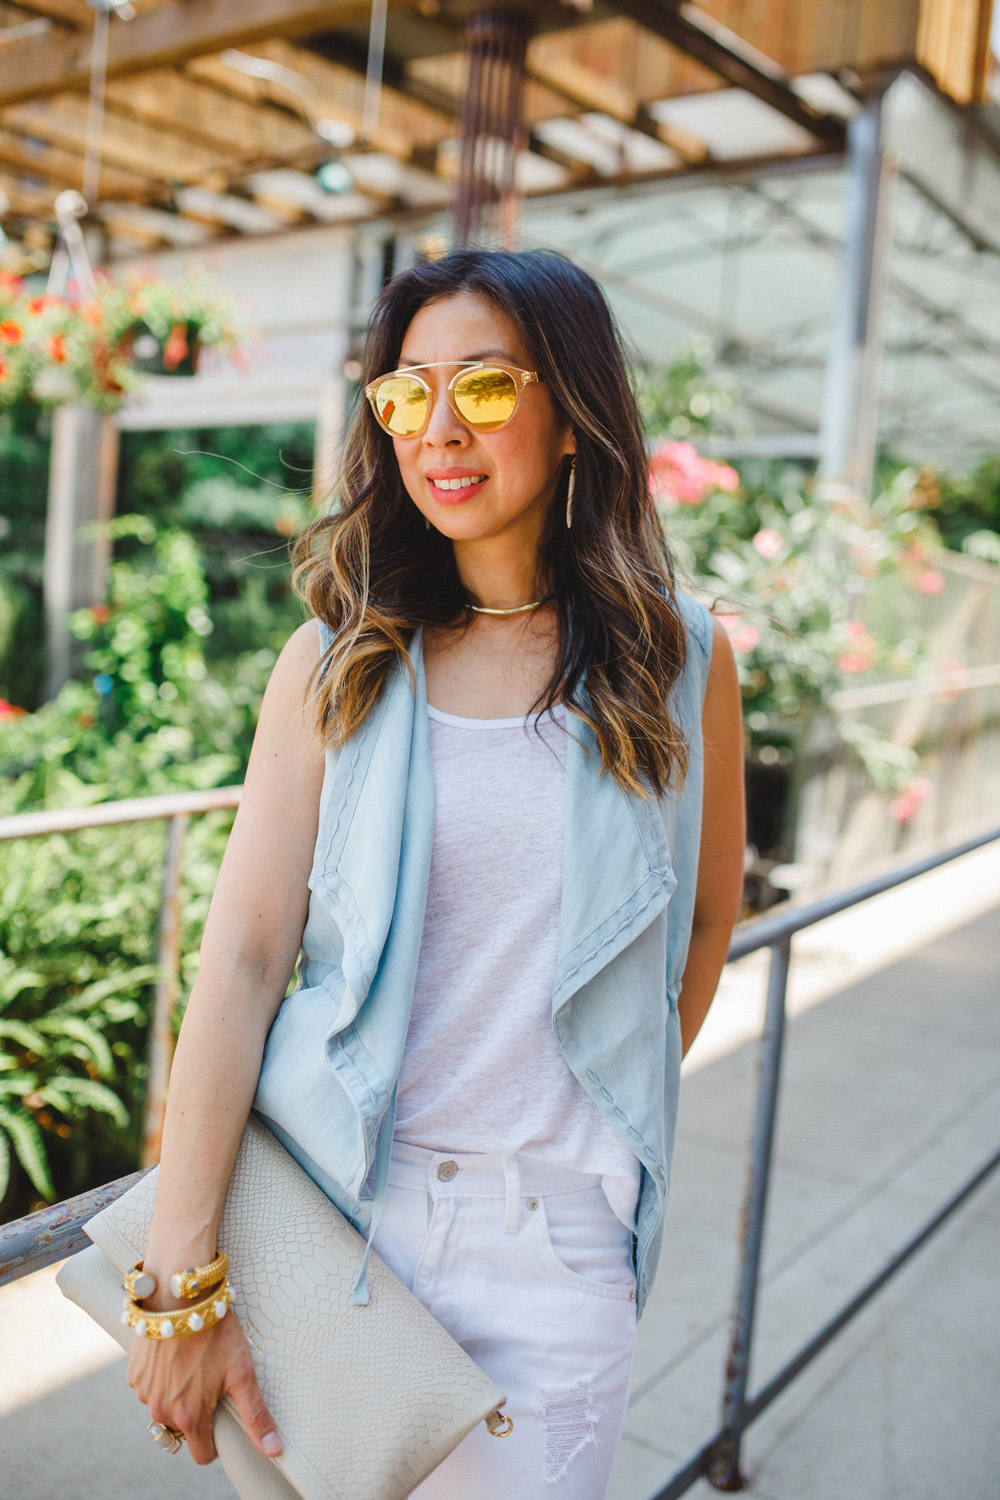 westward leaning flower sunglasses, chambray vest